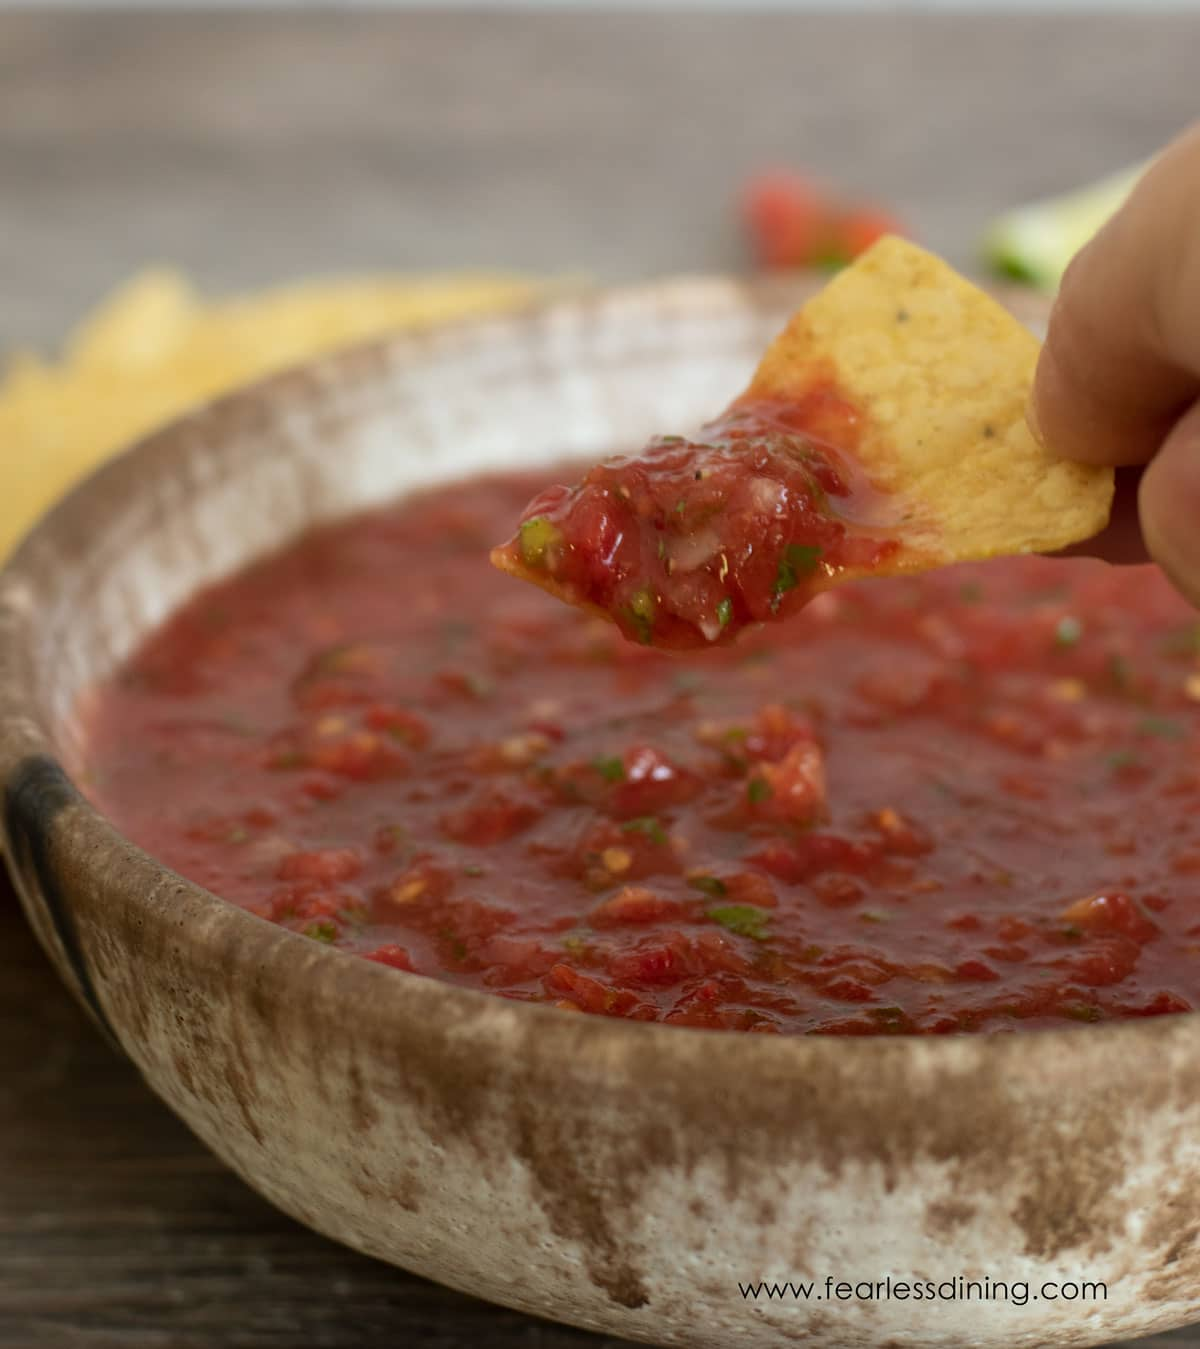 a chip full of salsa